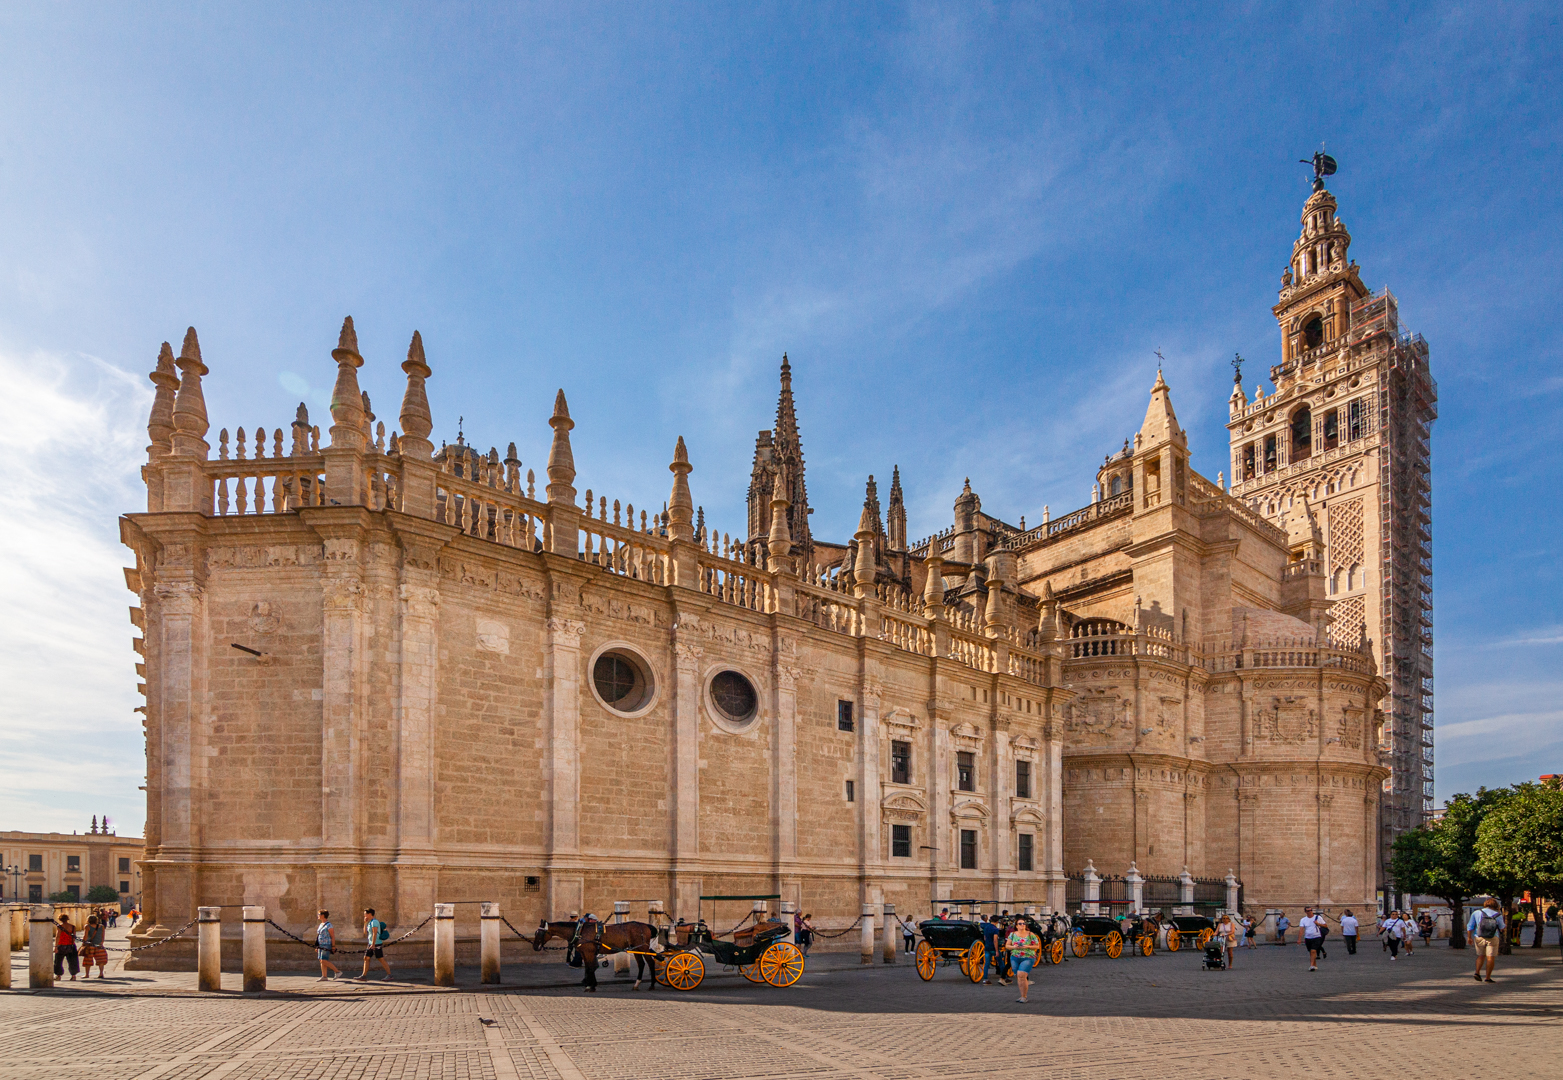 Roman Catholic cathedral in Seville, Spain